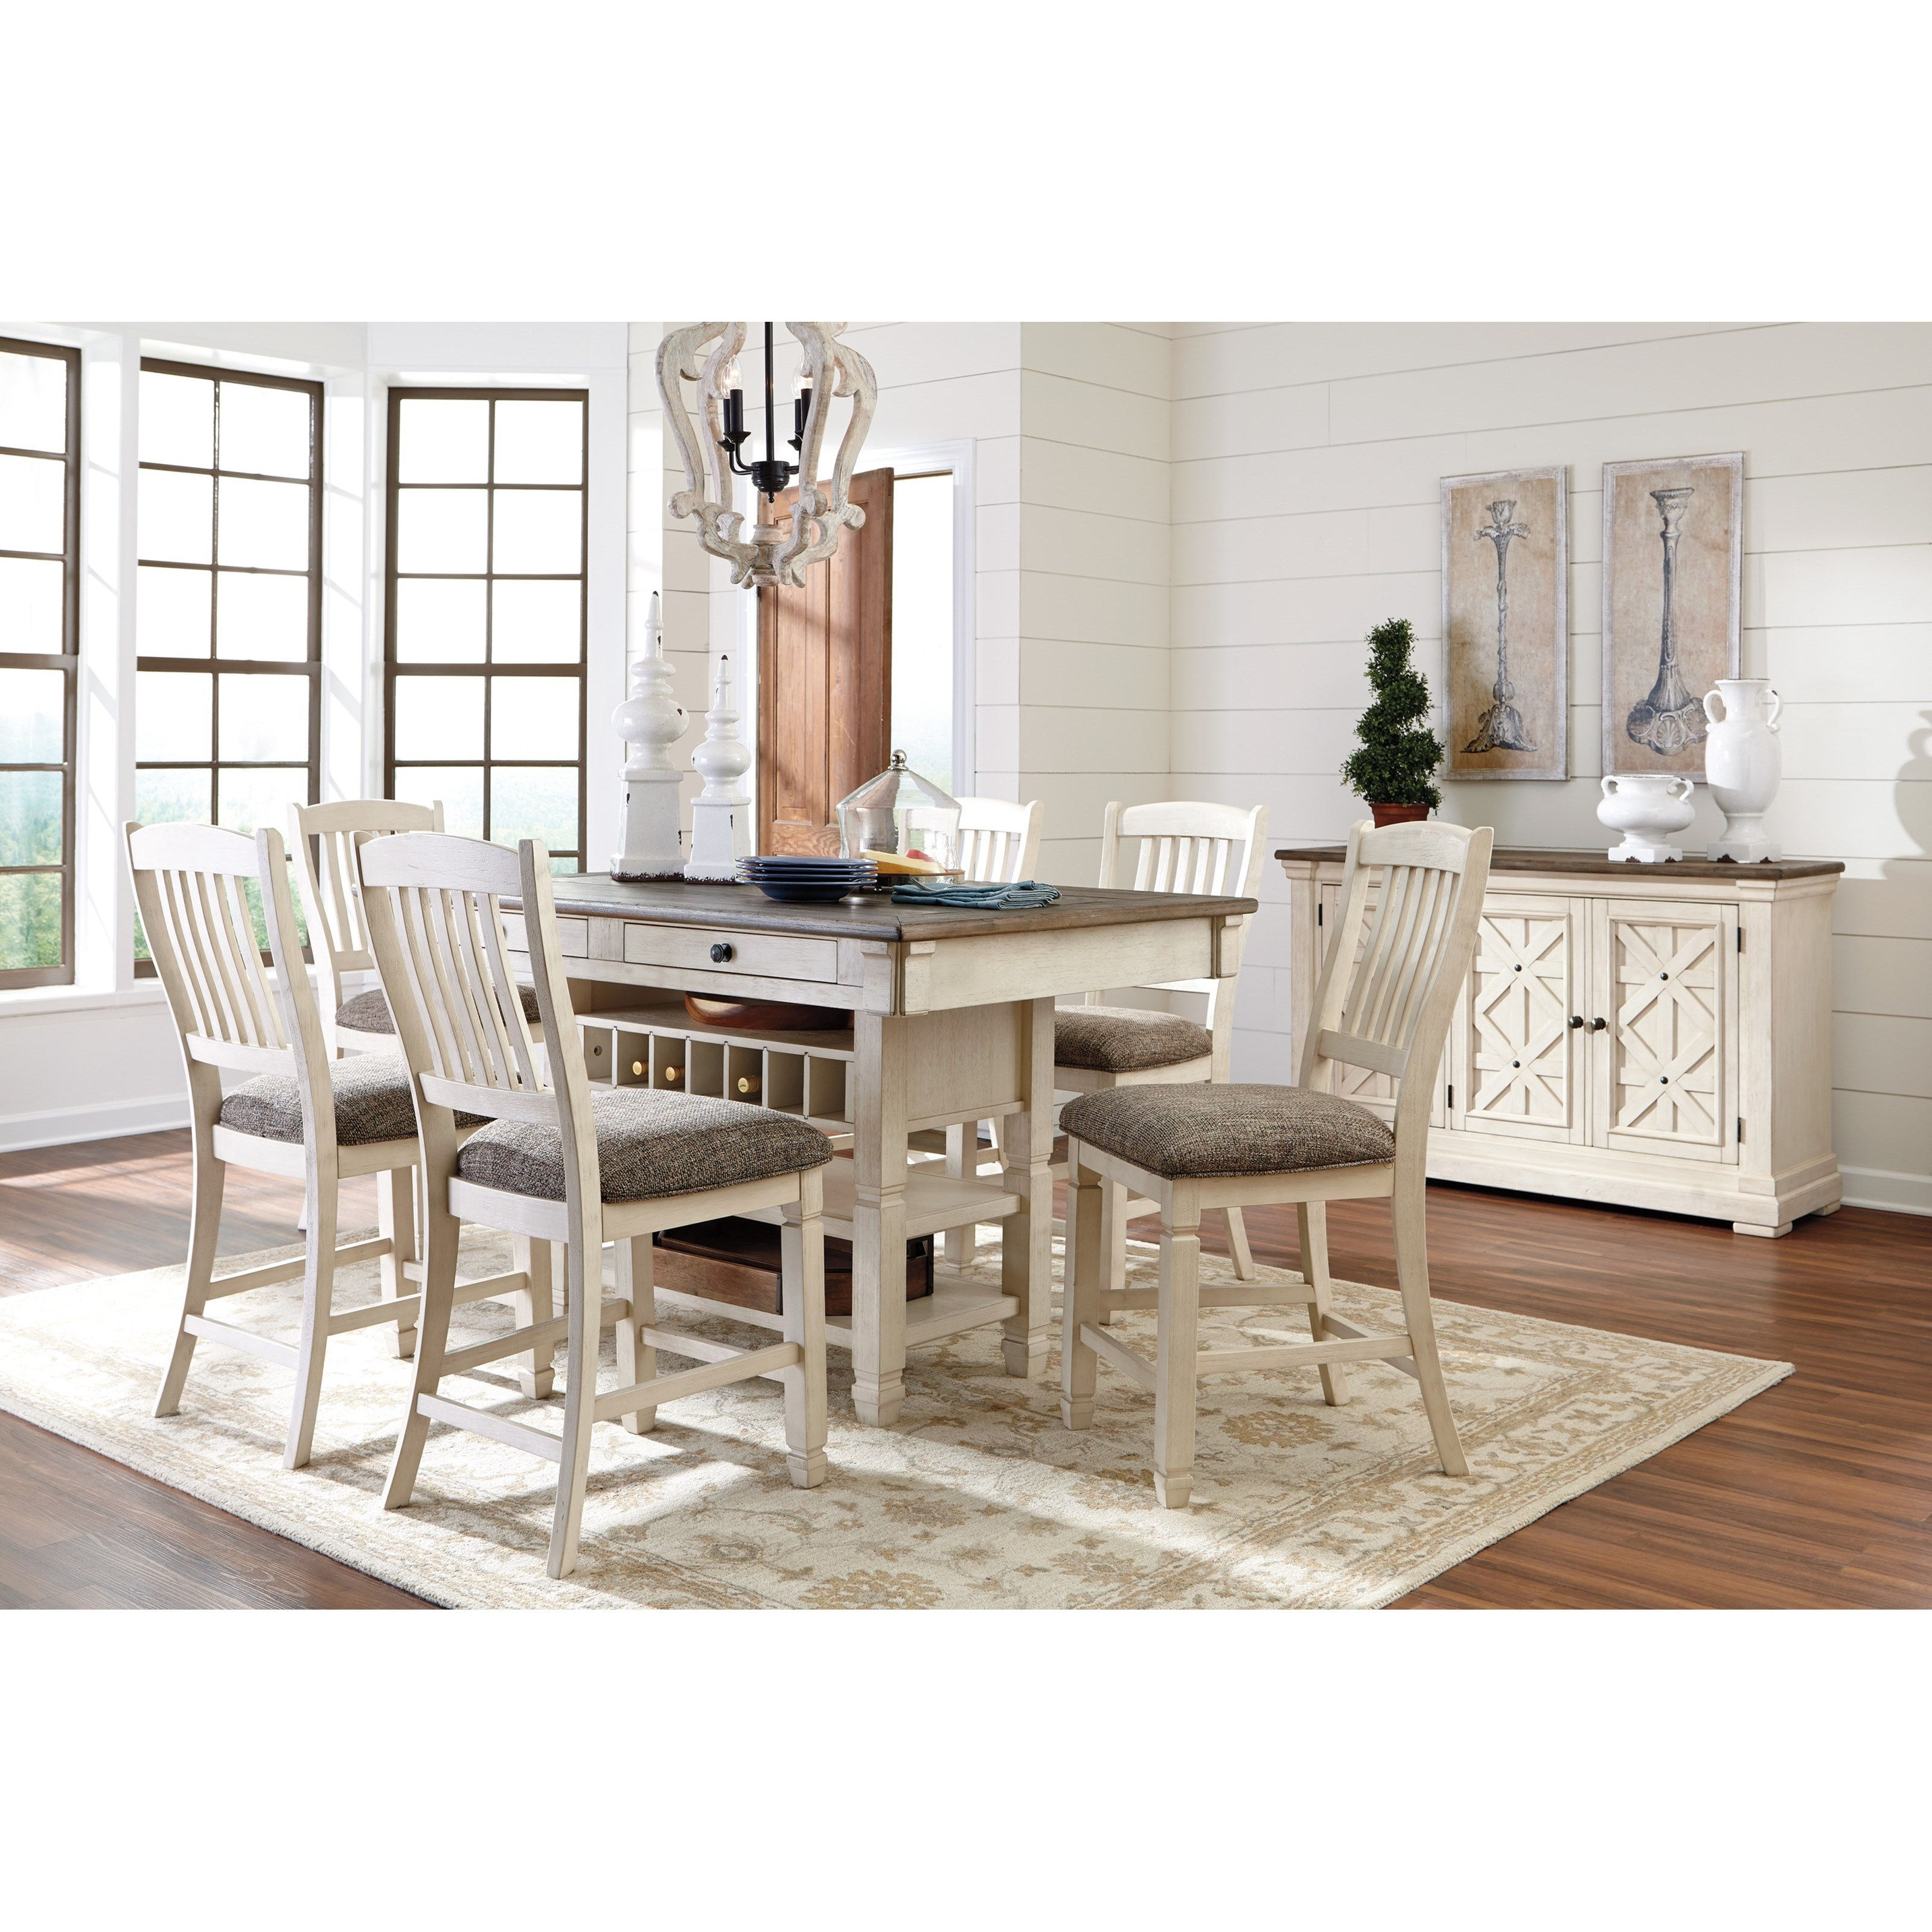 Signature Design by Ashley Bolanburg Casual Dining Room